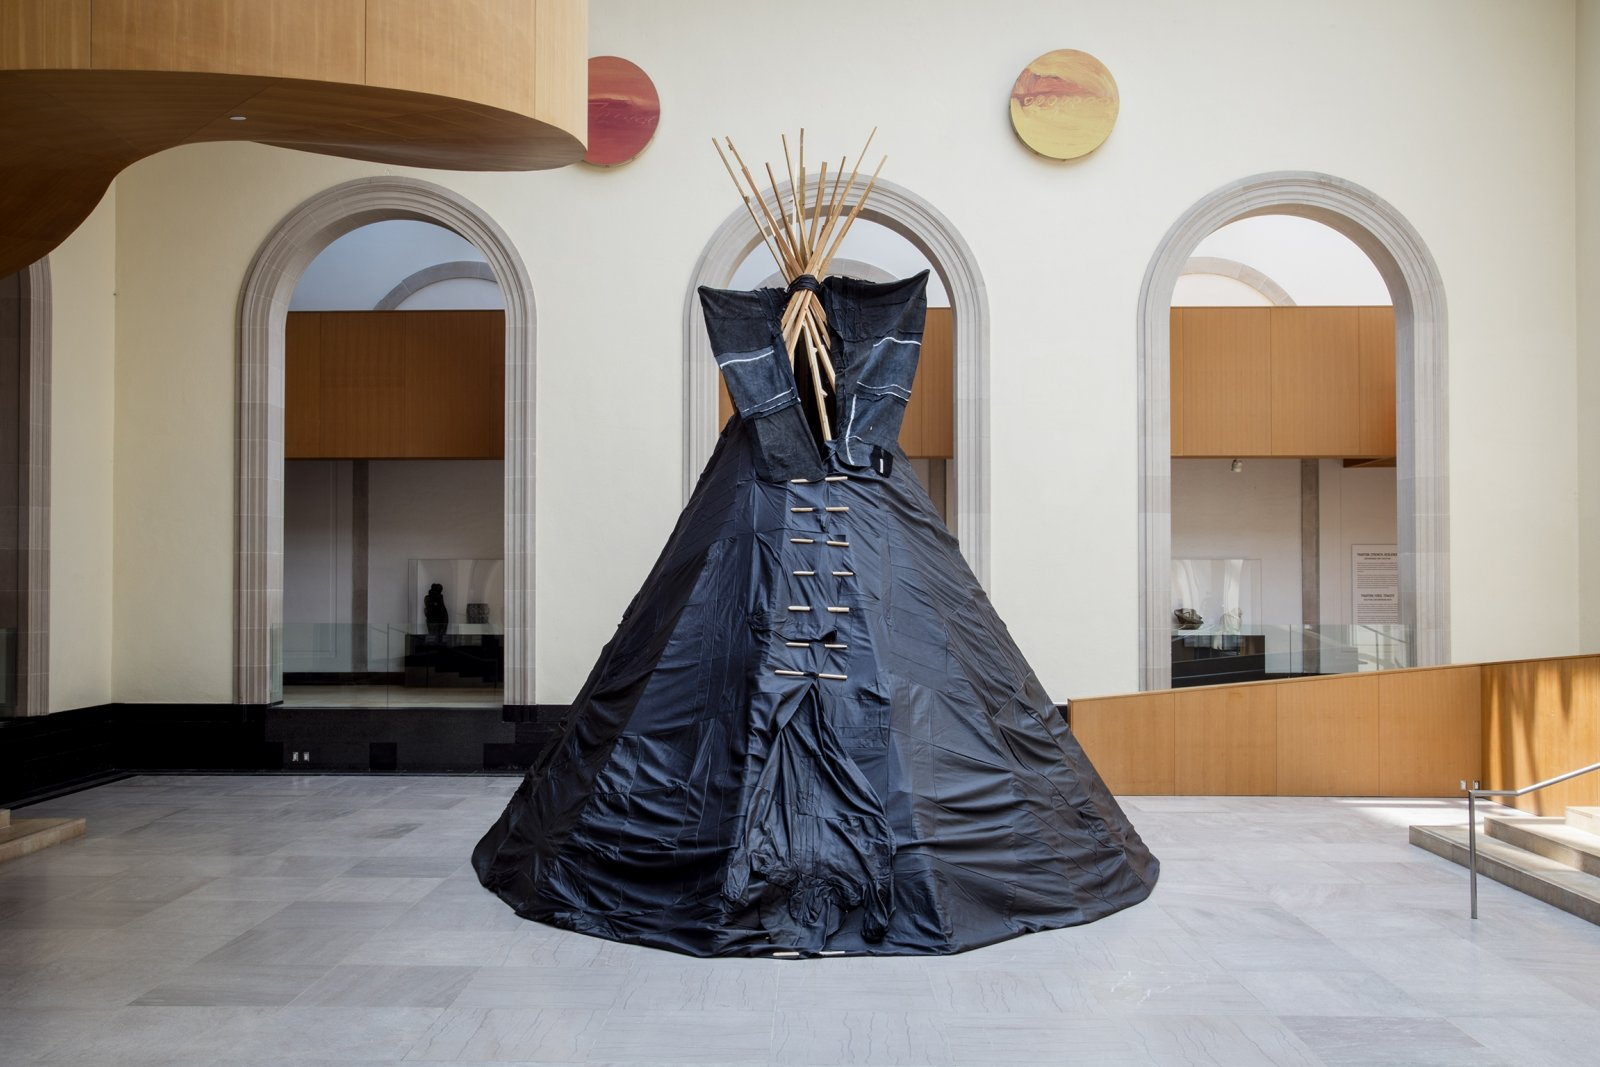 Brian Jungen, Furniture Sculpture, 2006, 11 black leather couches, wood, 244 x 232 x 284 in. (620 x 589 x 721 cm). Installation view, Art Gallery of Ontario, Toronto, Canada, 2019